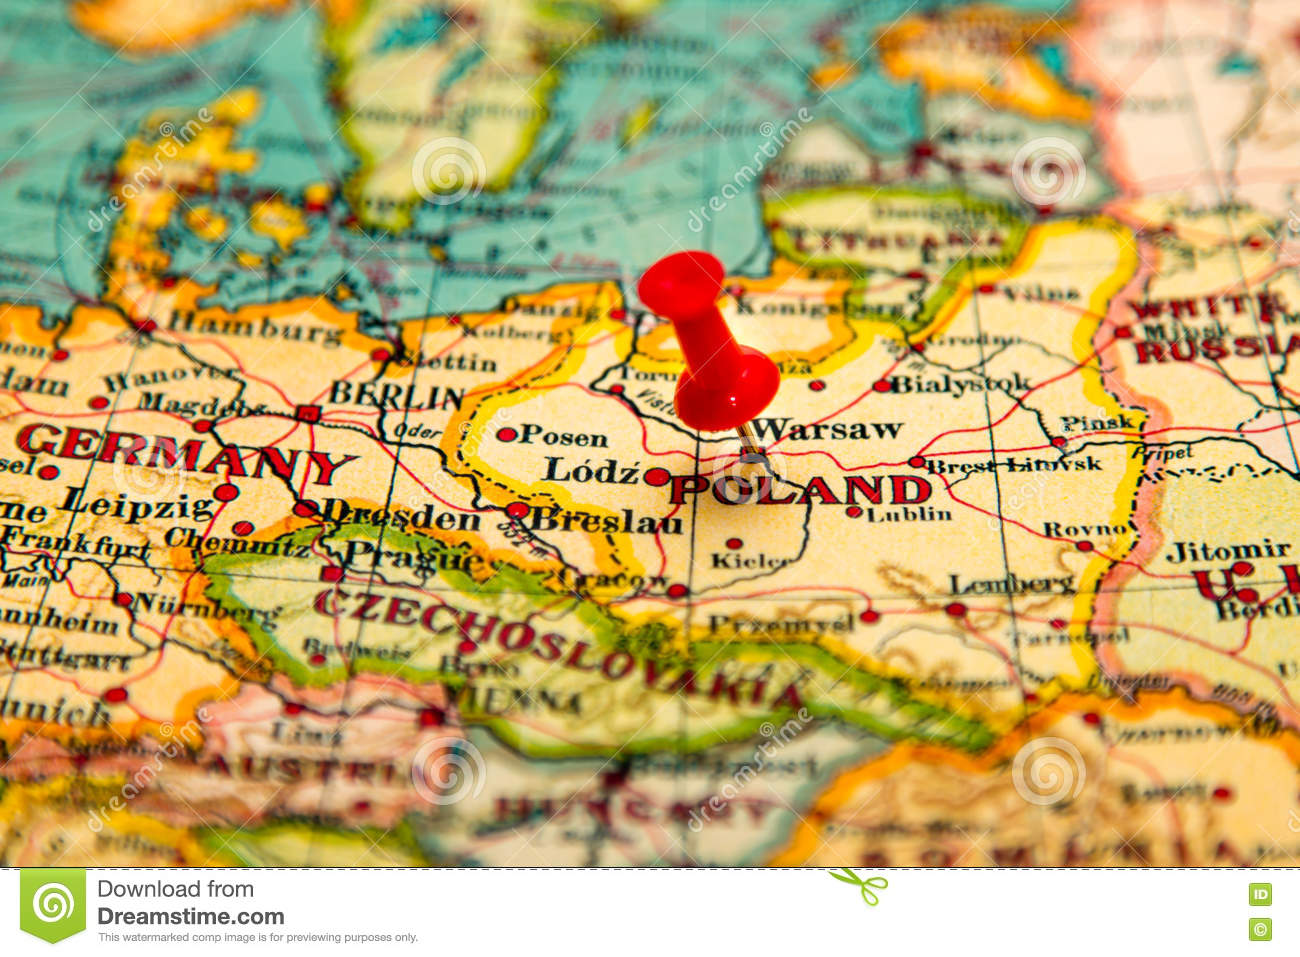 Warsaw, Poland Pinned On Vintage Map Of Europe Stock Image - Image ...